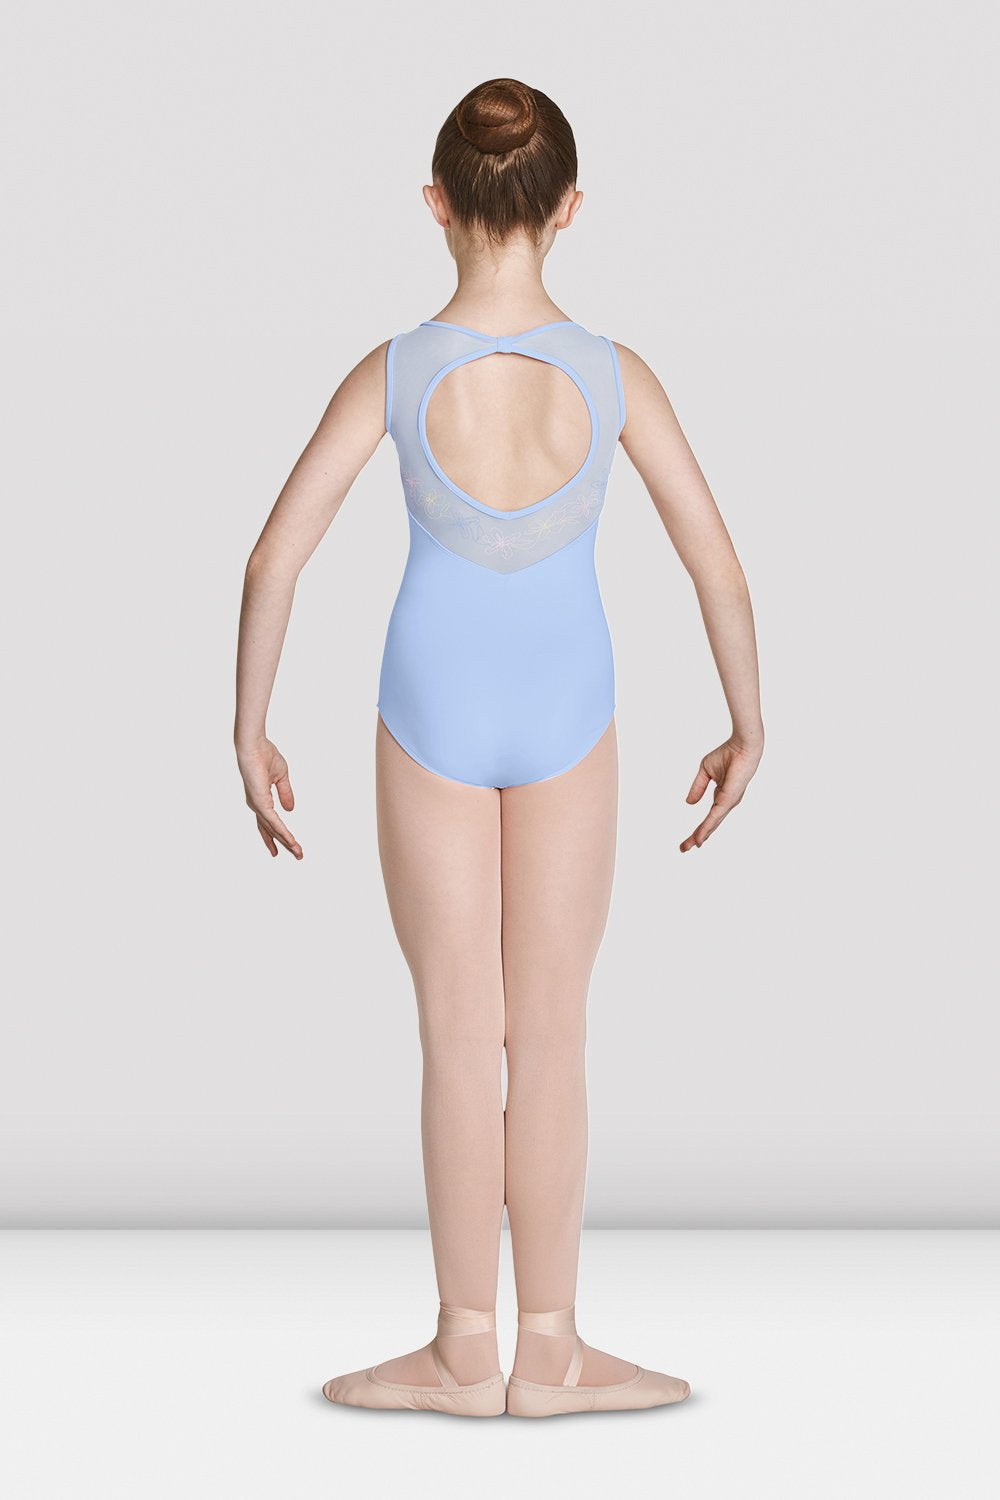 Pink Bloch Girls Open Back Sweetheart Tank Leotard on female model feet in first position with arms in demi bras facing the back